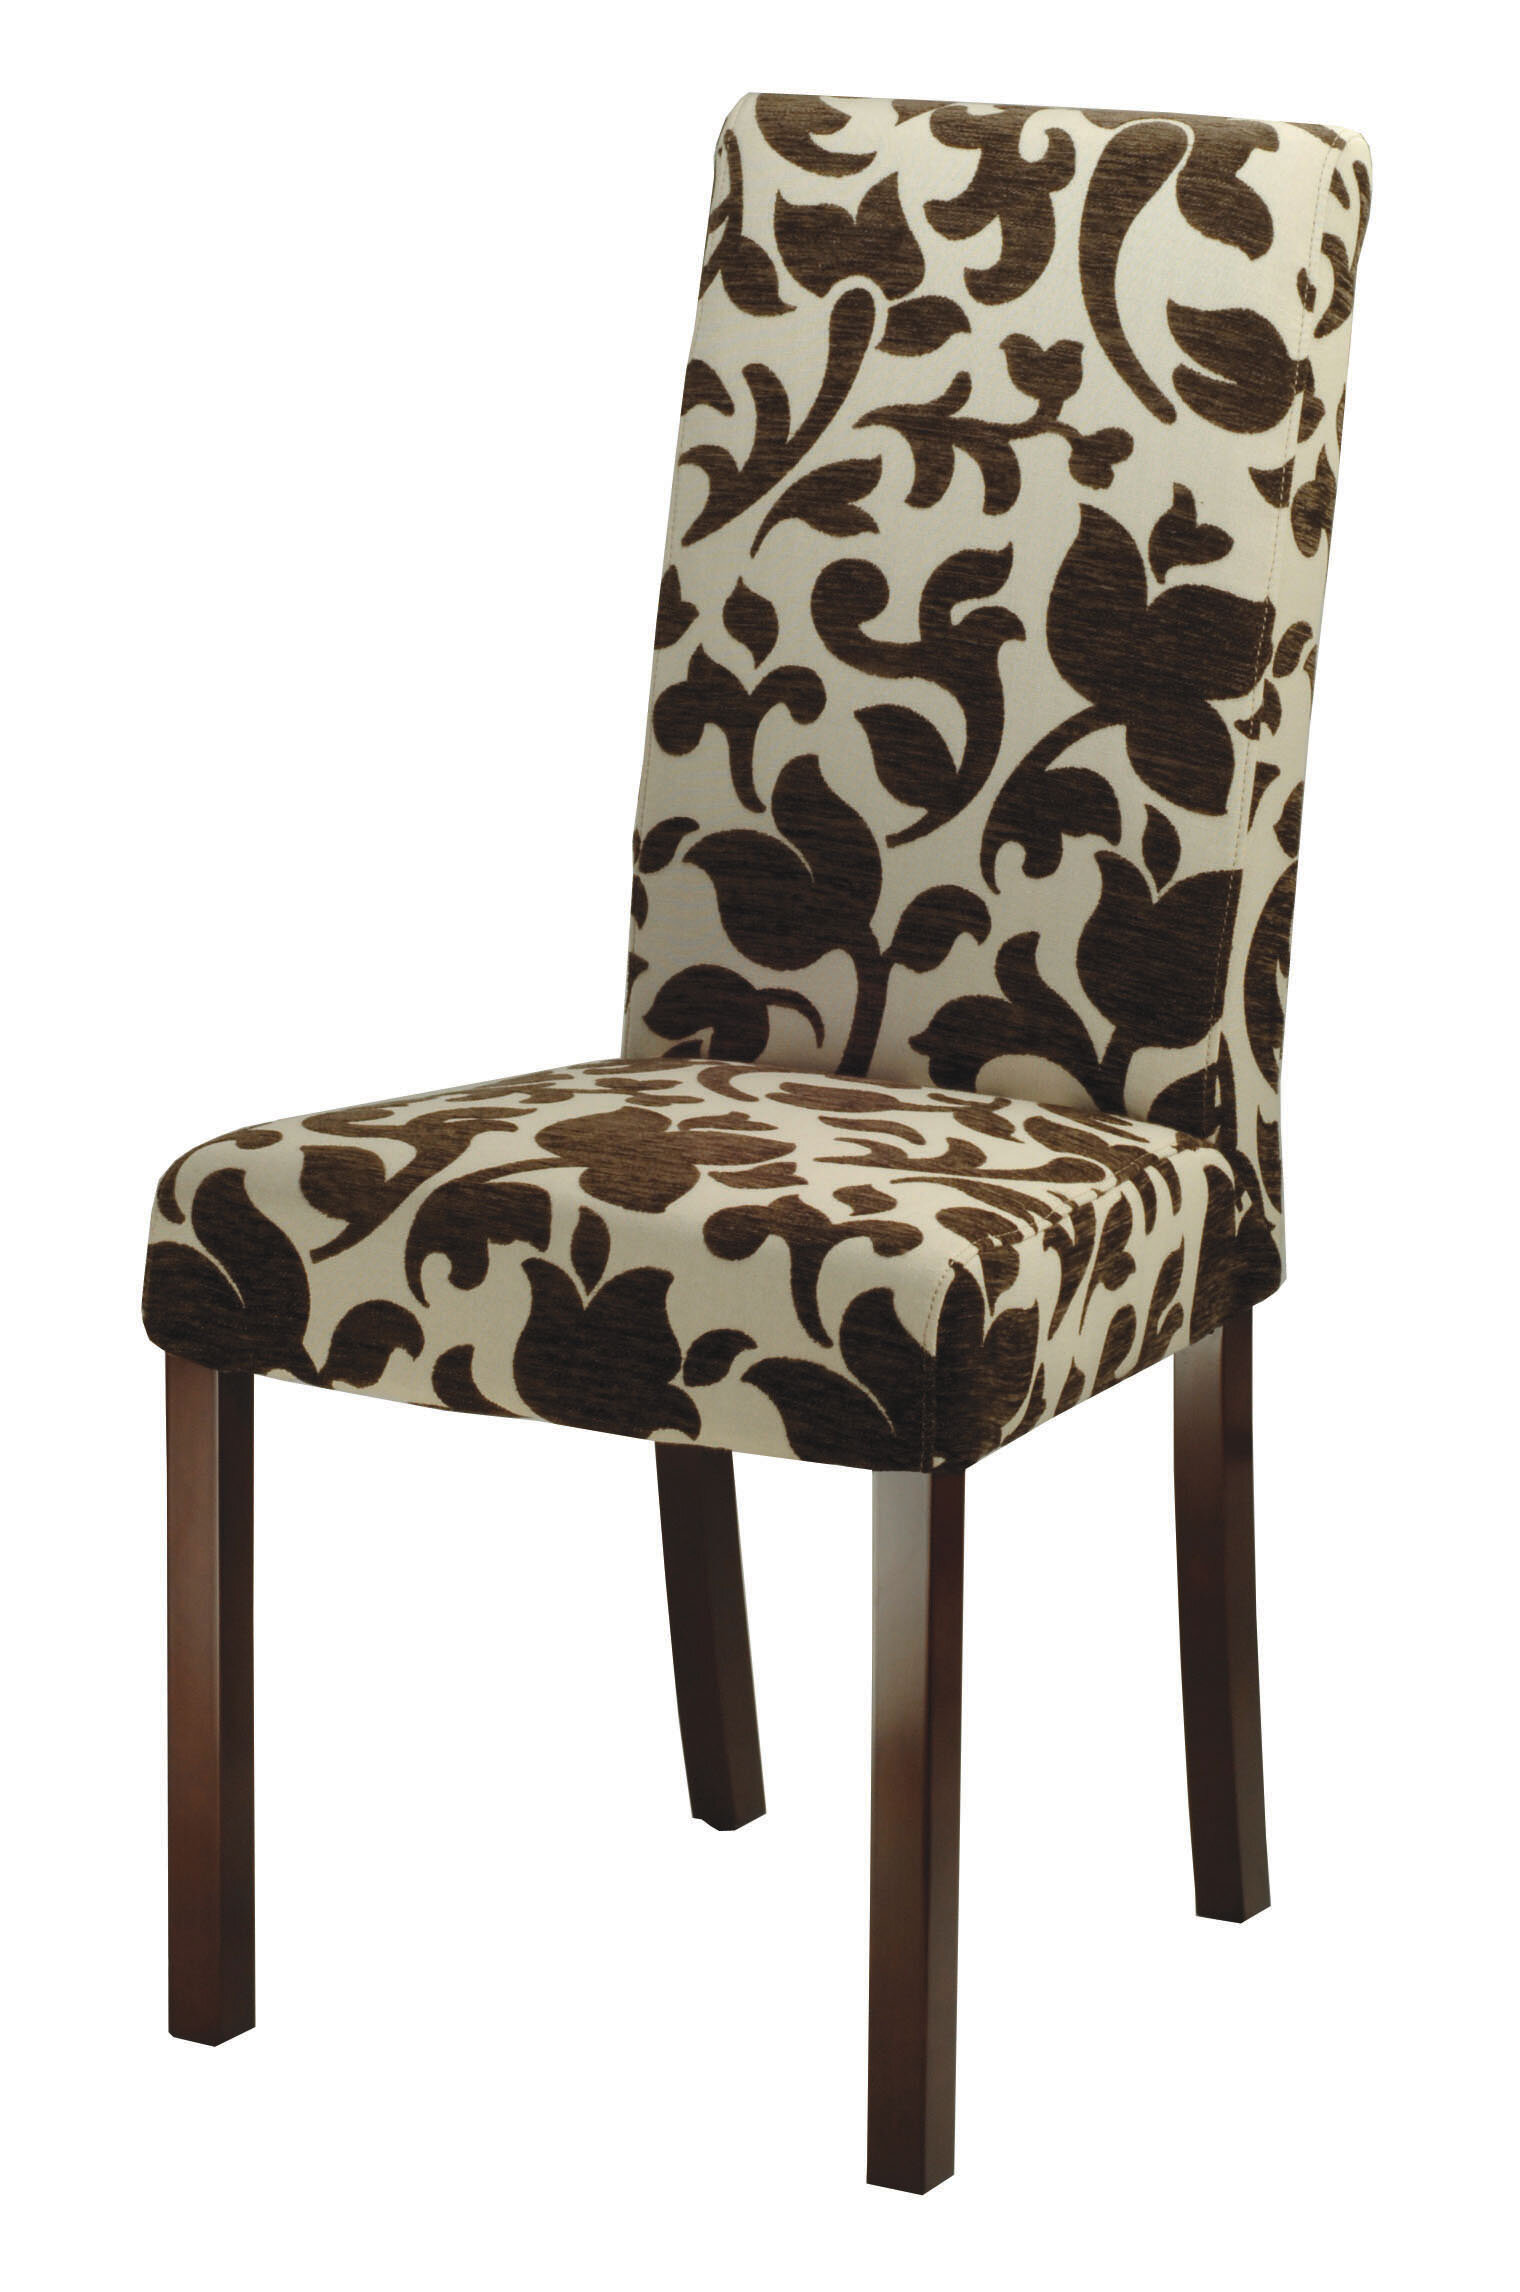 Genial Dining Chair Styles And Types Guide | Wayfair